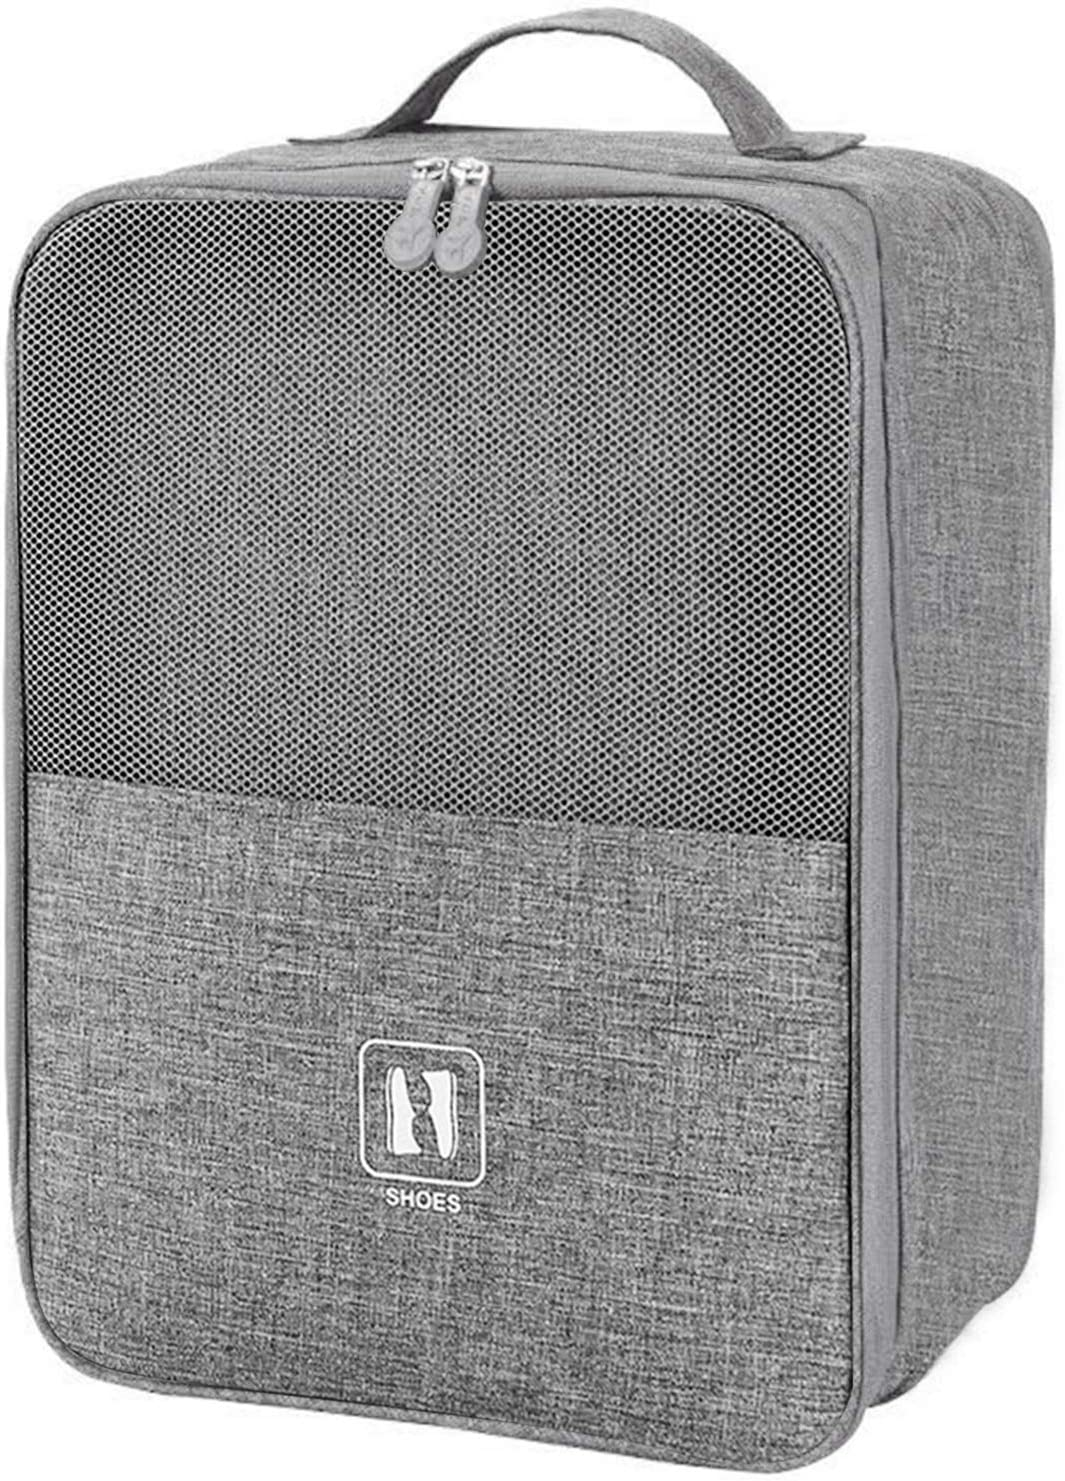 Shoe Year-end annual account Bags Portable Travel Holds 2 Pair 3 of supreme Shoes or